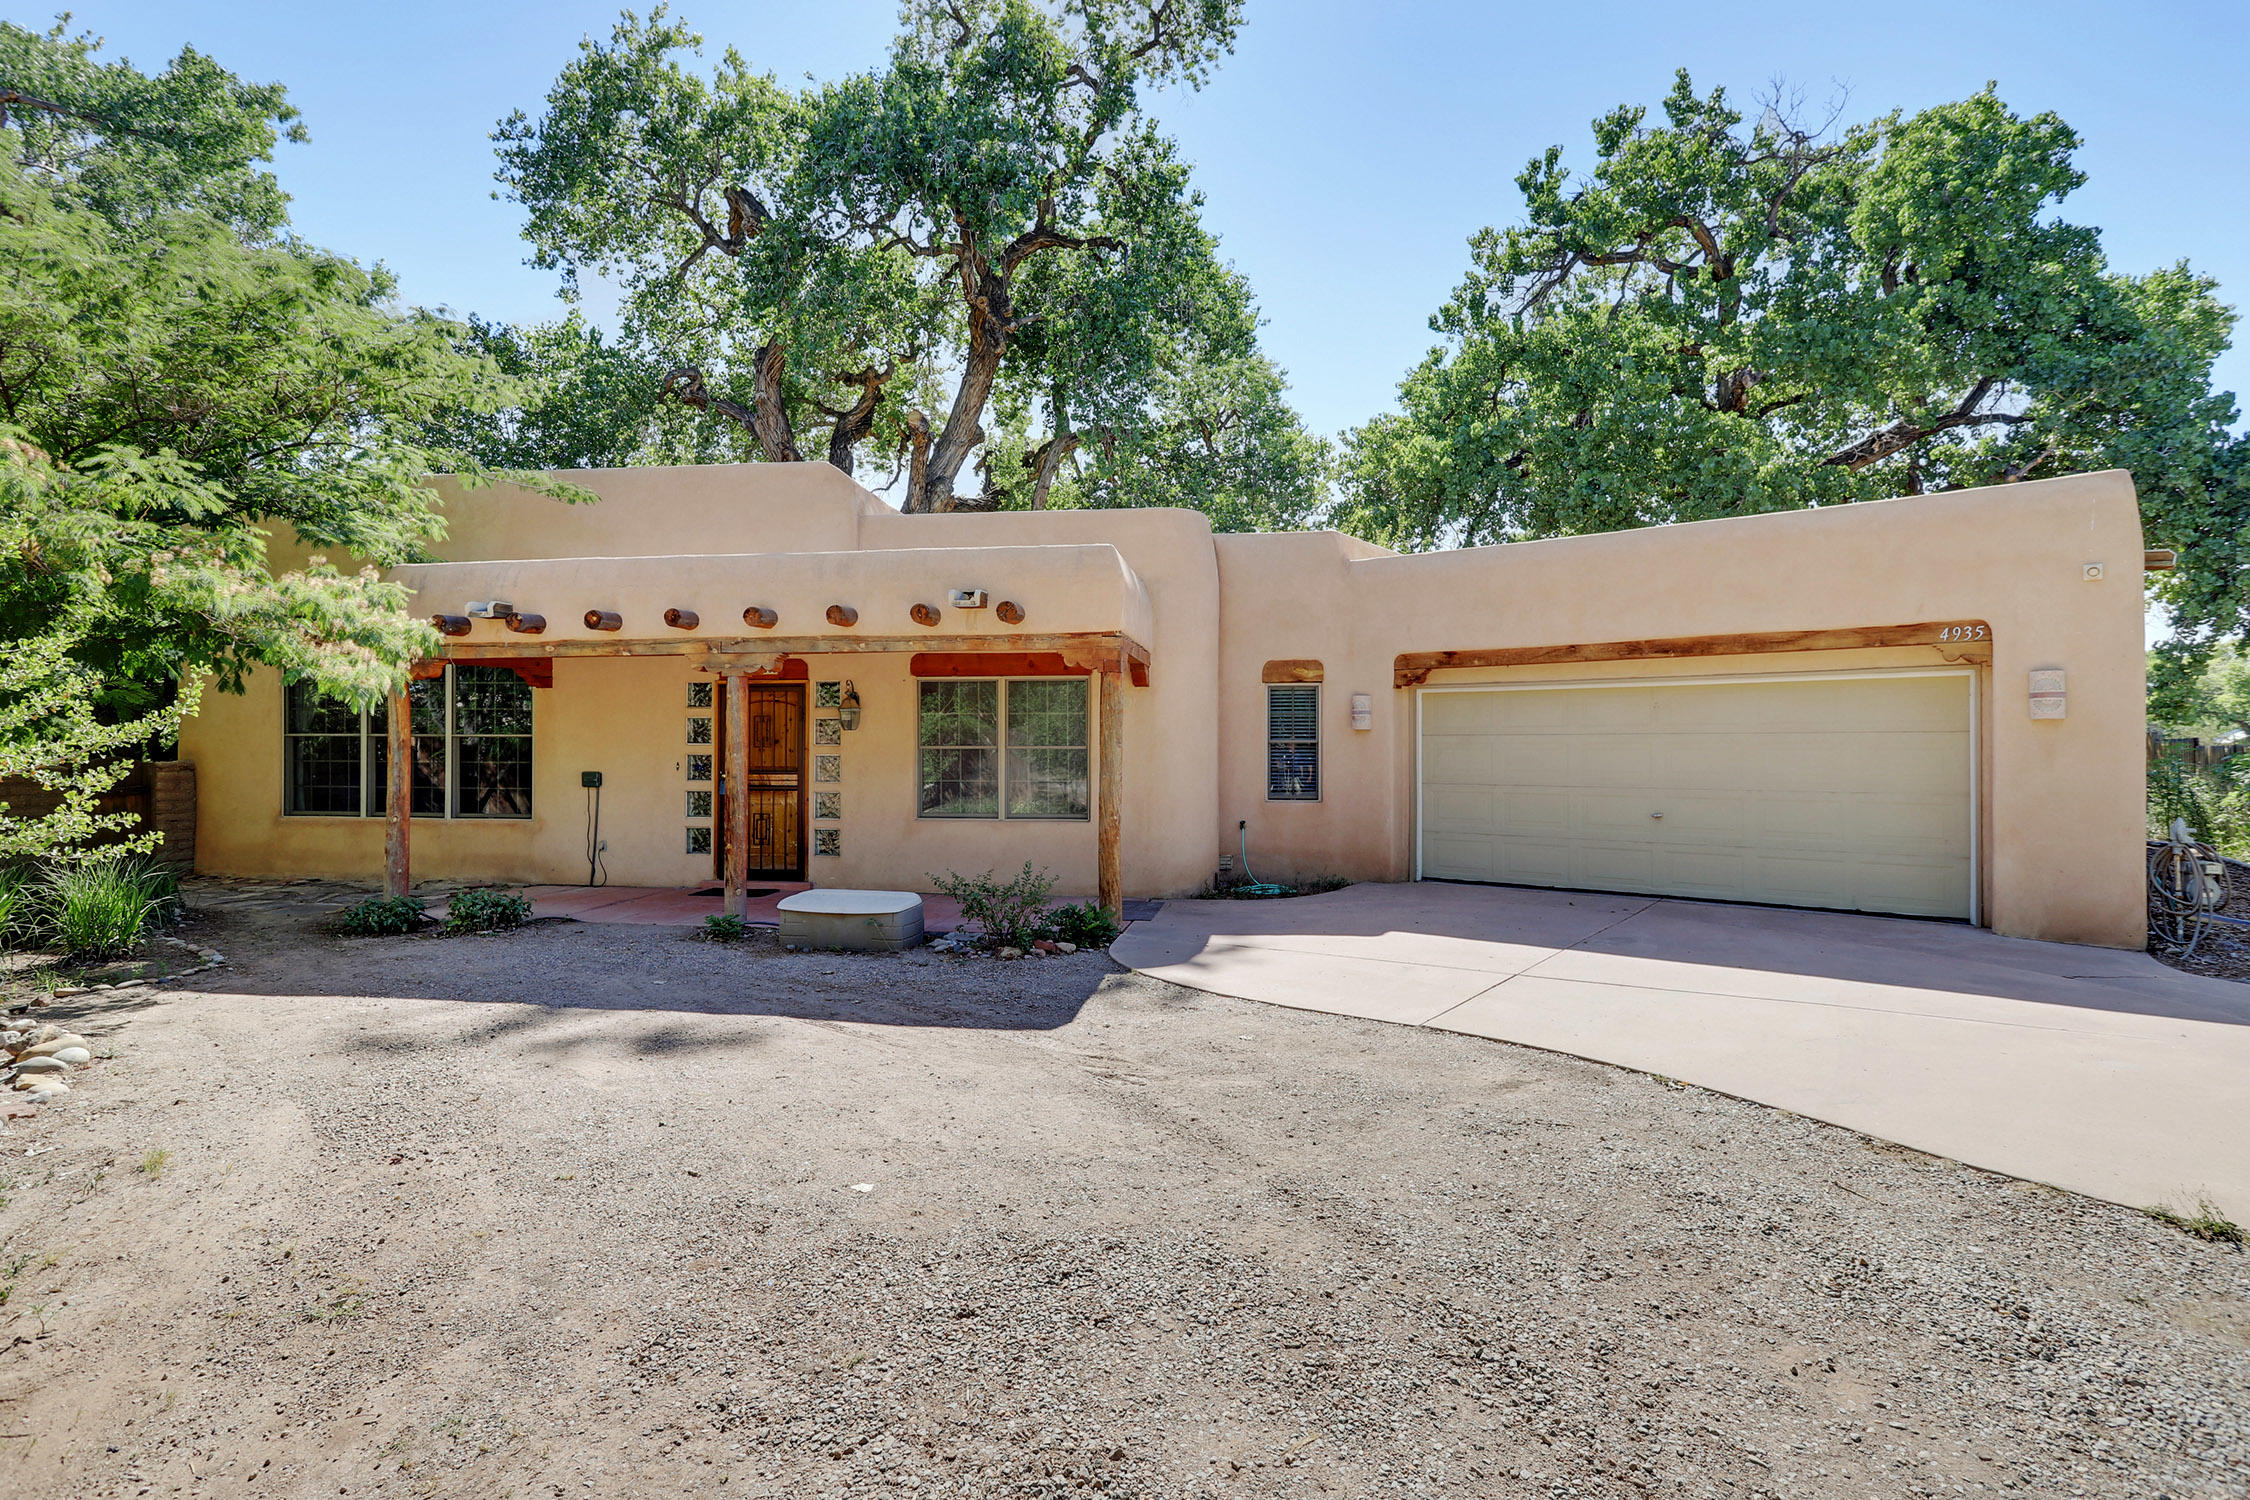 Tucked away next to an Acequeia is this beautiful home surrounded by trees. This custom home is a tranquil lush oasis from the busy city. Drivey down the long drive away from the street and feel your worries fade away! Custom home on .26 irrigated acre with all sorts of fruit trees and Cottonwoods giving shade. Inside find vigas and corbels, Tongue & Groove ceilings, tile floors, Nichos, a Kiva Fireplace for those cozy winter evenings! large well-designed kitchen with sunny breakfast nook, and formal dining area.  Gas Stove, microwave, refrigerator stays. the master is very spacious with a spa-like bath! Two more spacious bedrooms, one would make an excellent office. This well-cared for home is ready for you. On demand hot water, and pella sliding glass doors go outside to paradise!